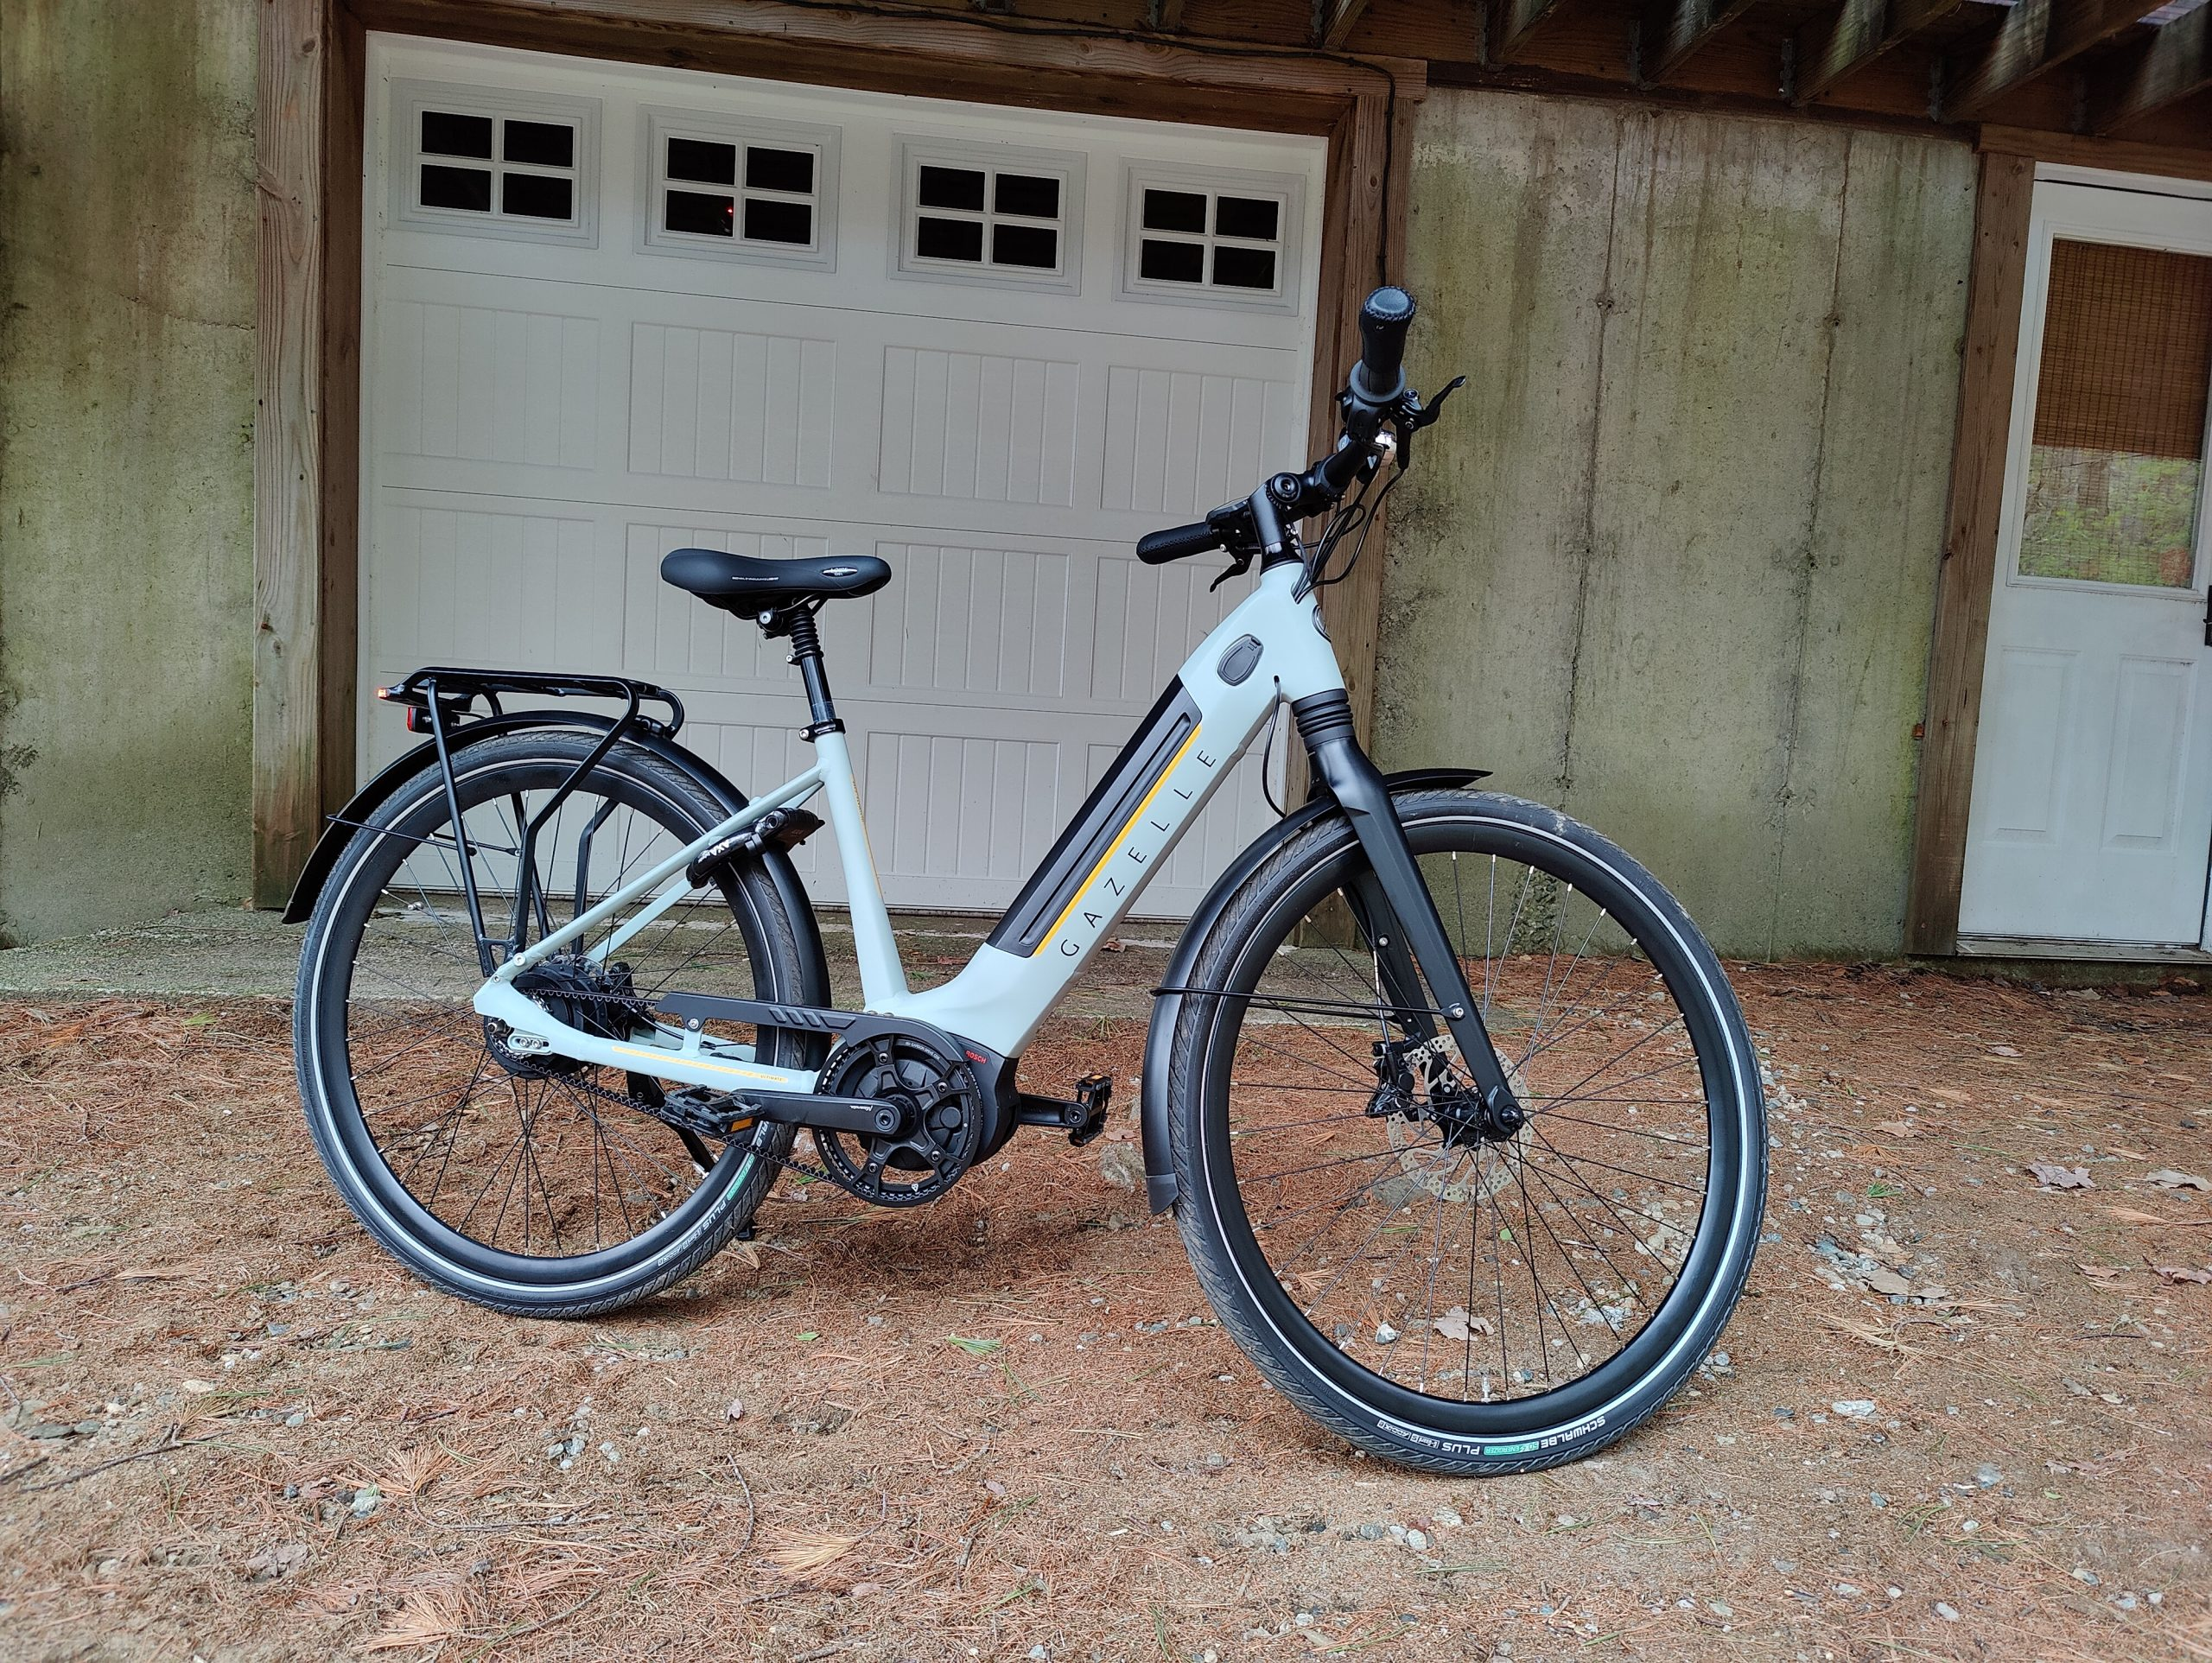 eBikes such as the Gazelle Ultimate C380 HMB are selling like hotcakes